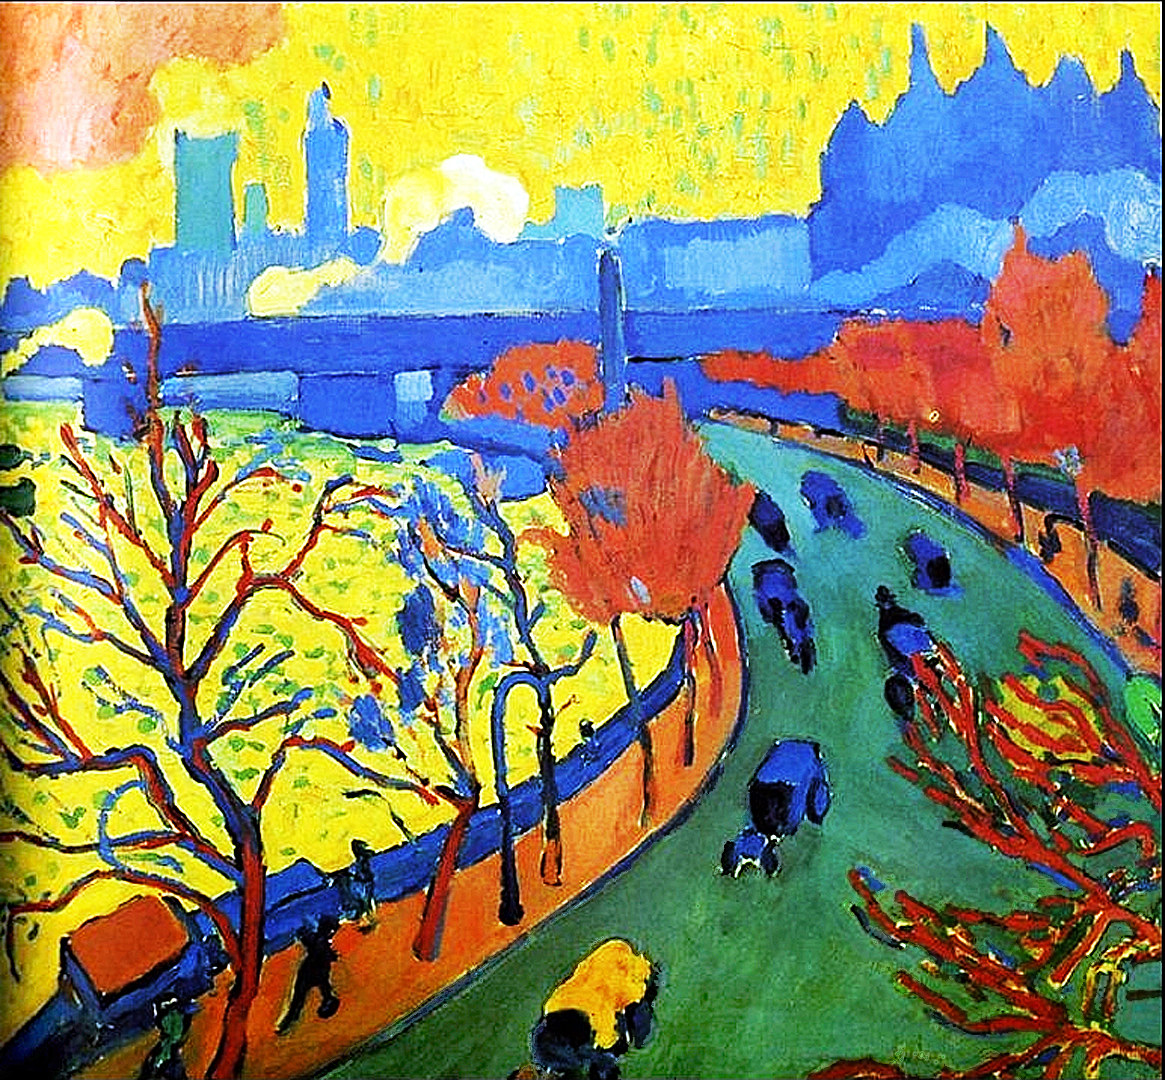 andre derain artwork analysis essays